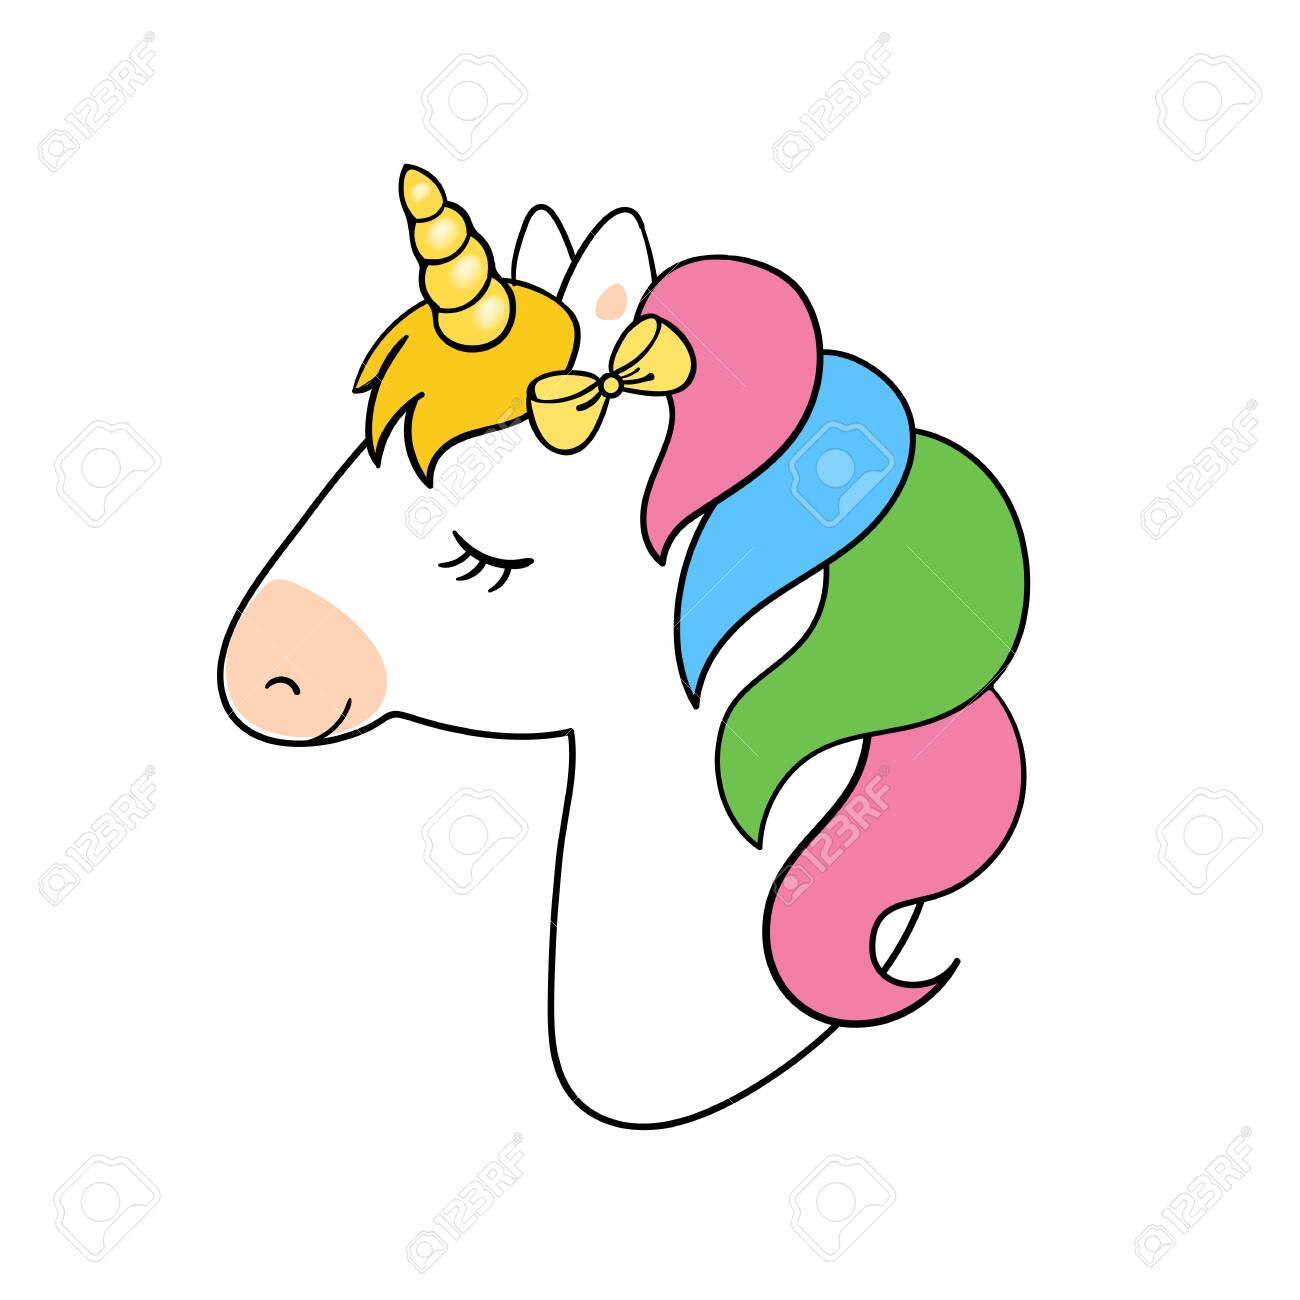 Cute Unicorn Vector Illustration Unicorn Vector Icon Isolated Royalty Free Cliparts Vectors And Stock Illustration Image 132543049